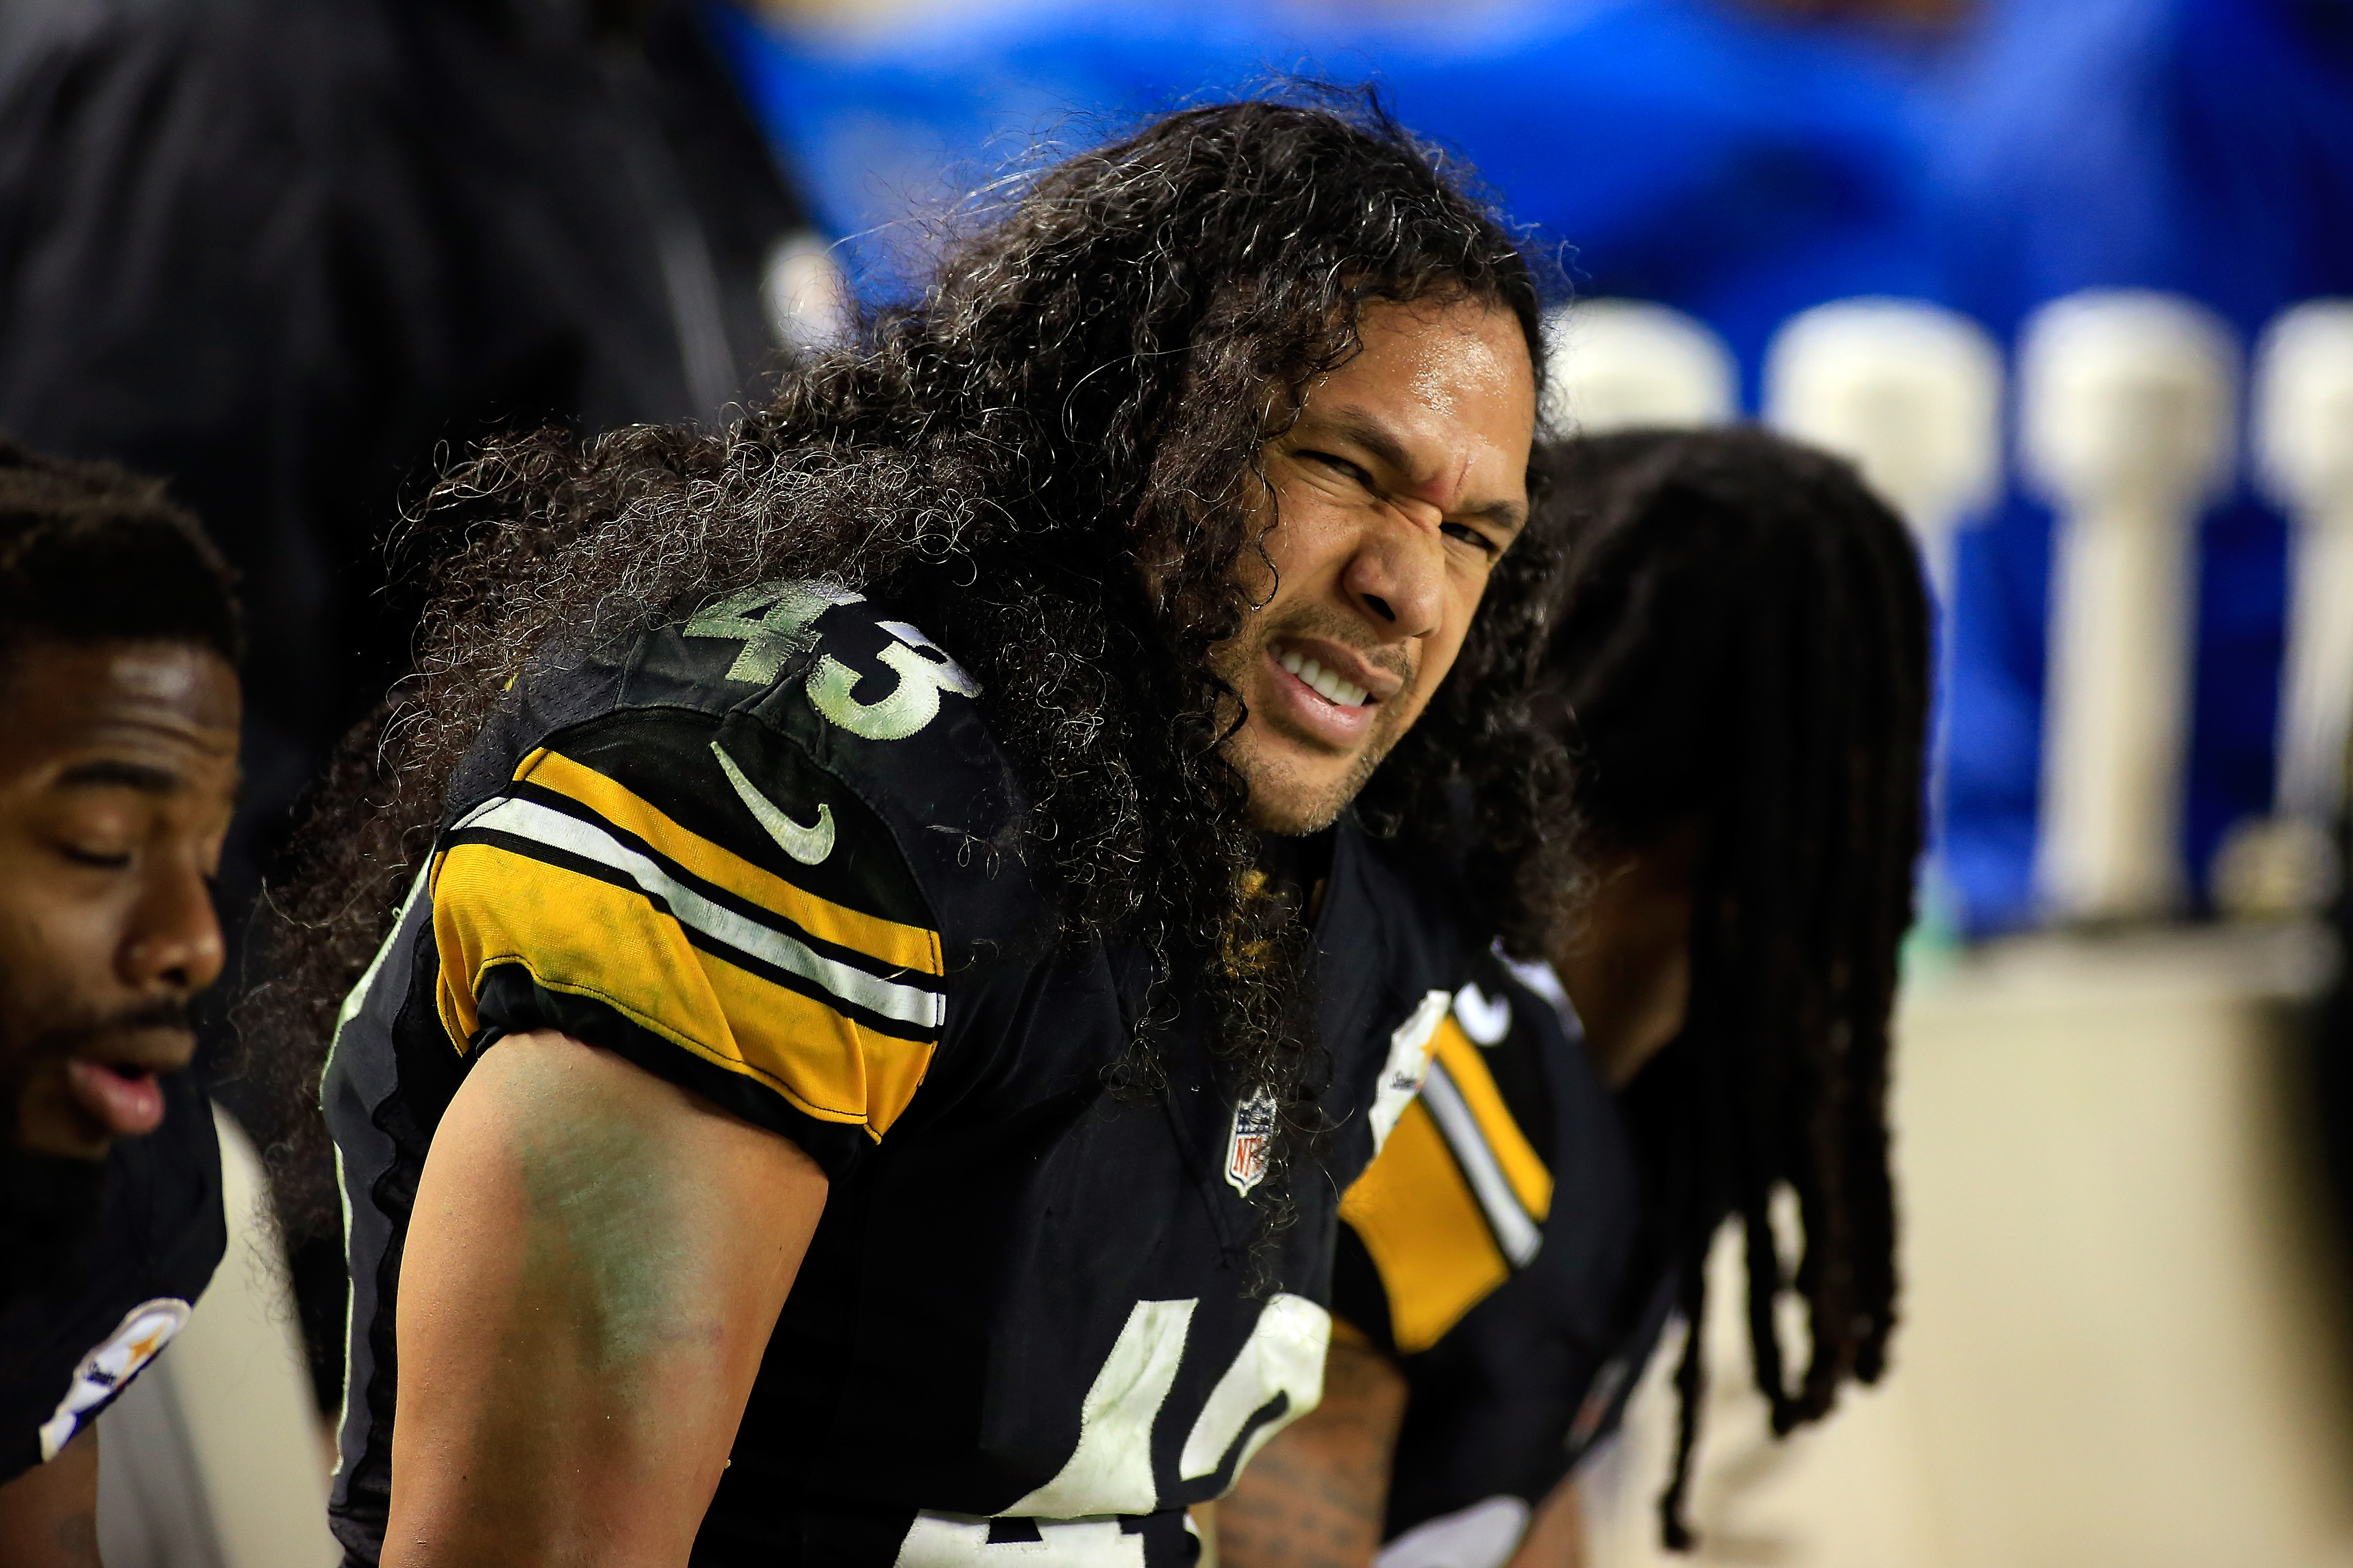 Pittsburgh Steelers Legend Troy Polamalu Got His Famous Hair Insured for $1 Million